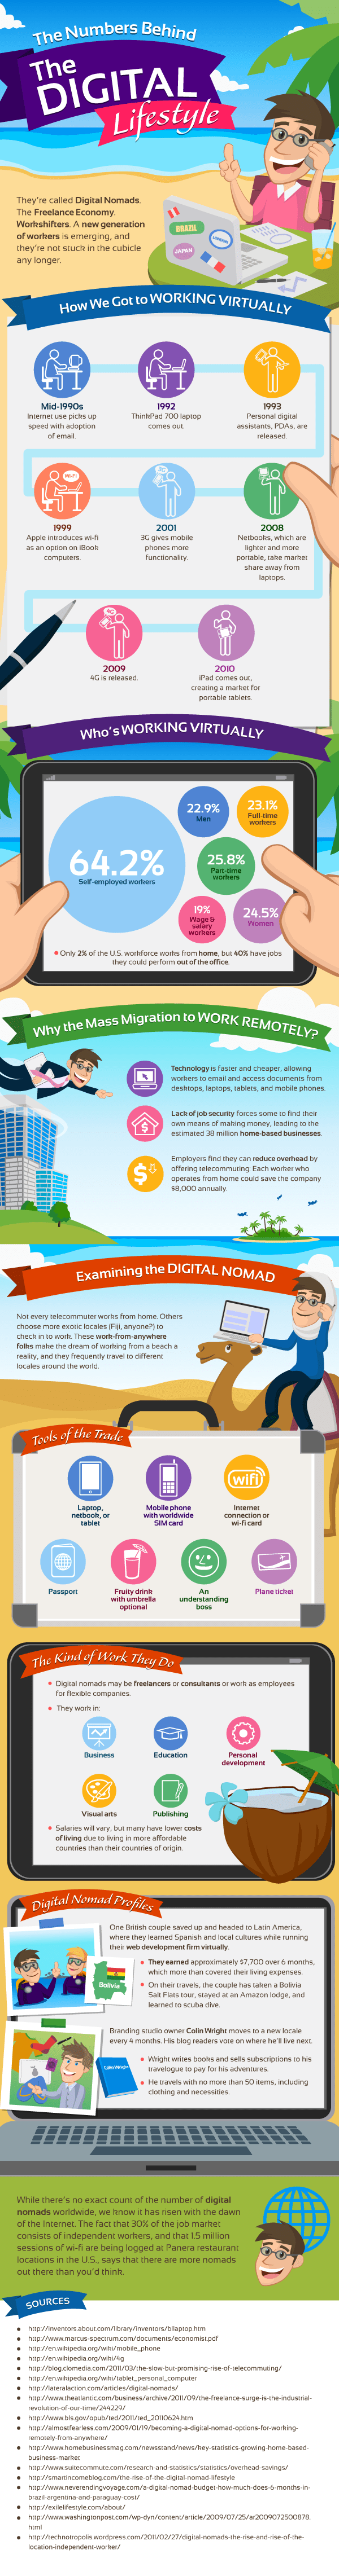 digital lifestyle infographic